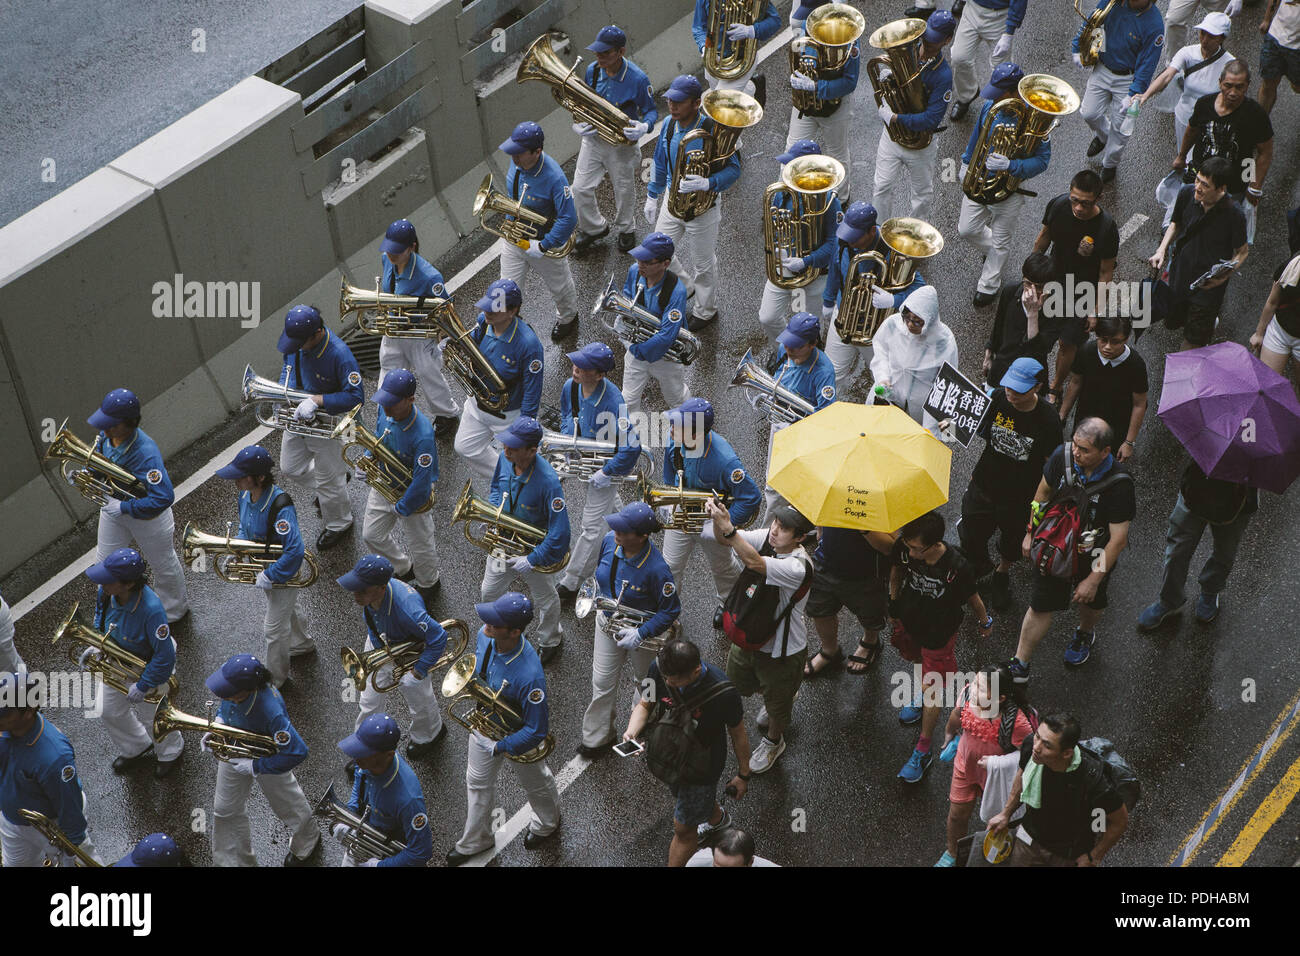 Hong Kong, Hong Kong. 1st July, 2017. A marching band seen joining the crowd of demonstrators.Thousands came together and demonstrated to mark the 20th anniversary of the Handover from Britain to China, Hong Kong's return to China on July 1st 1997. The protestors marched through sun and rain from Victoria Park to Admiralty, taking a stand on a variety of human-rights-related causes. Credit: Viola Gaskell/SOPA Images/ZUMA Wire/Alamy Live News - Stock Image